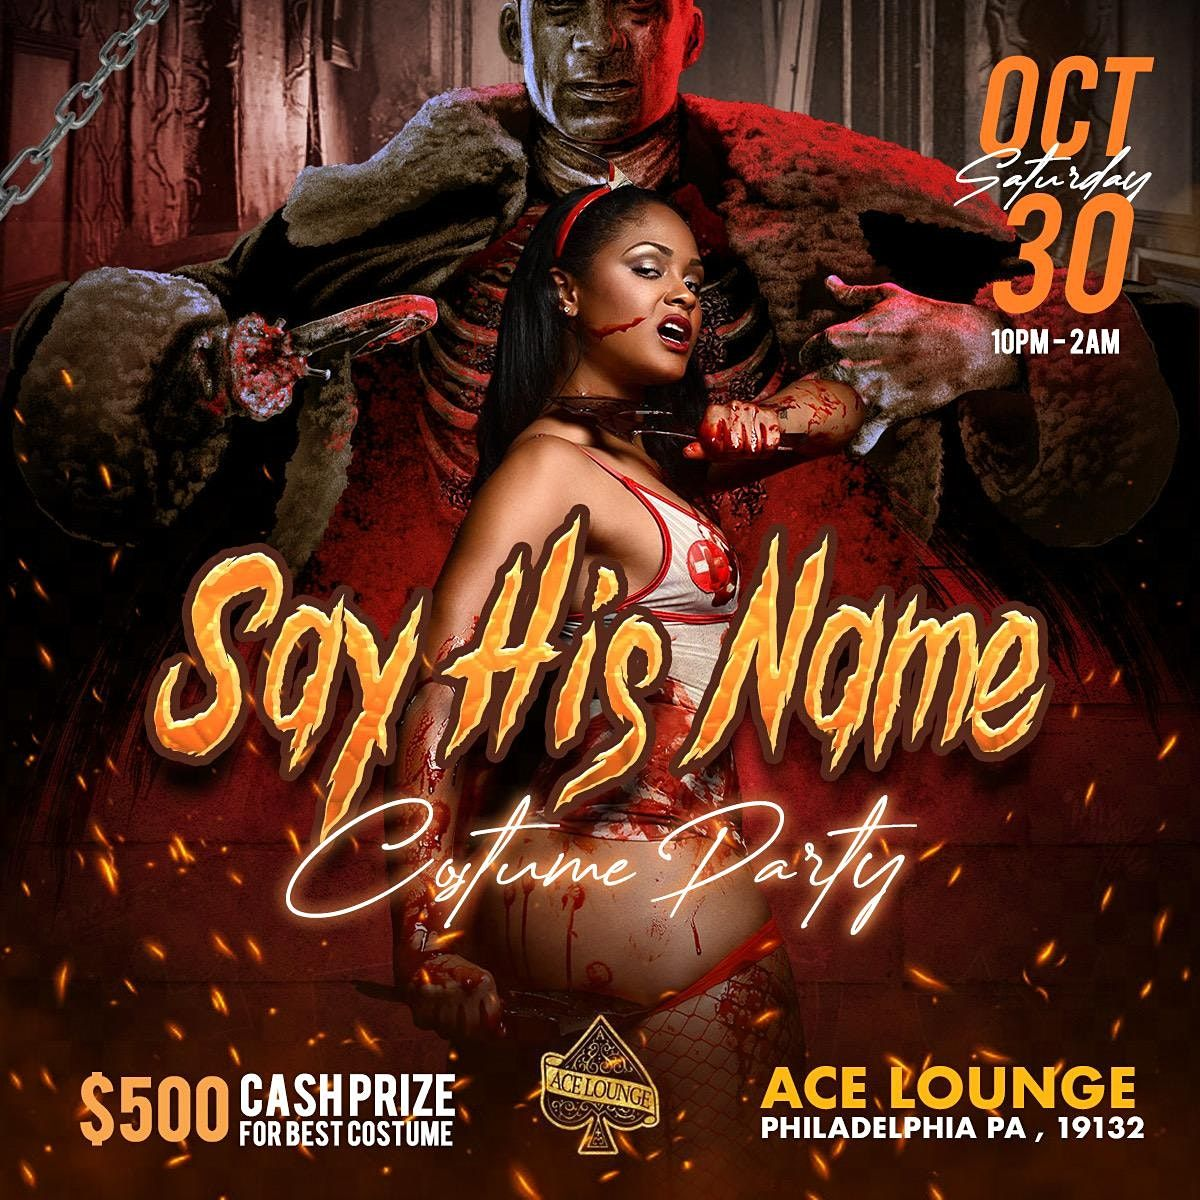 Say His Name : Halloween Costume Party